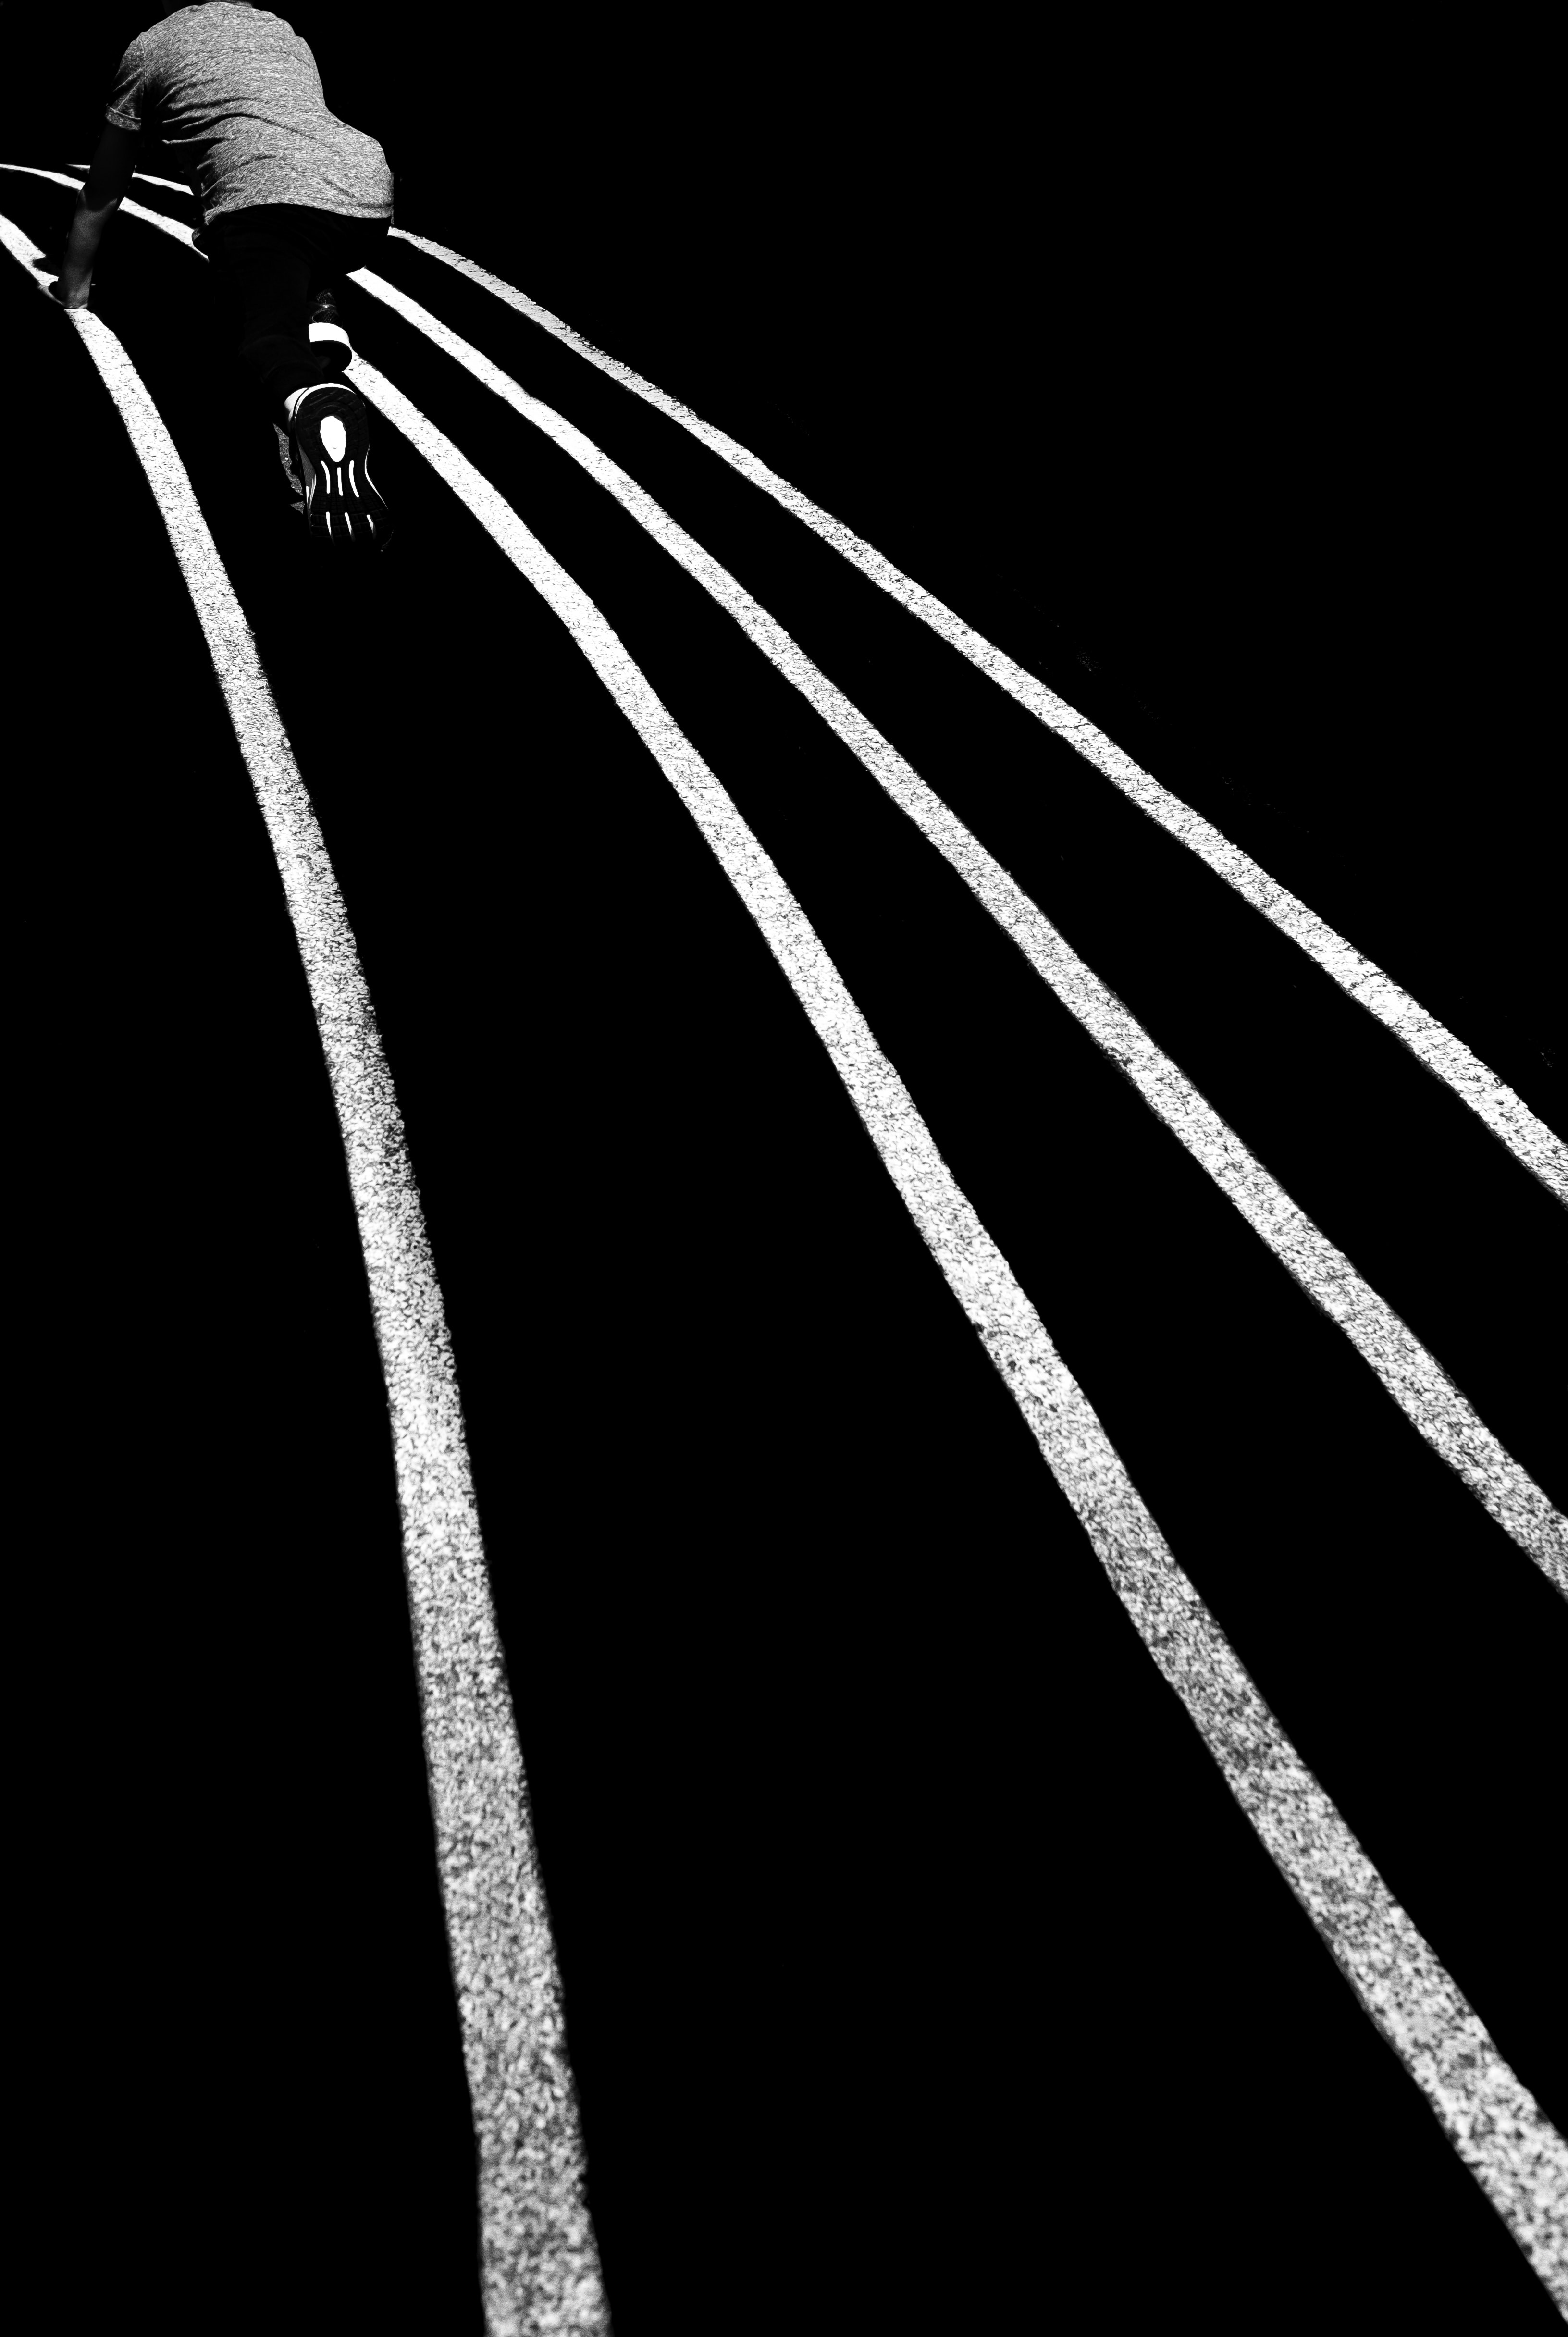 amoled wallpapers | 100+ best free wallpaper, black and white, black